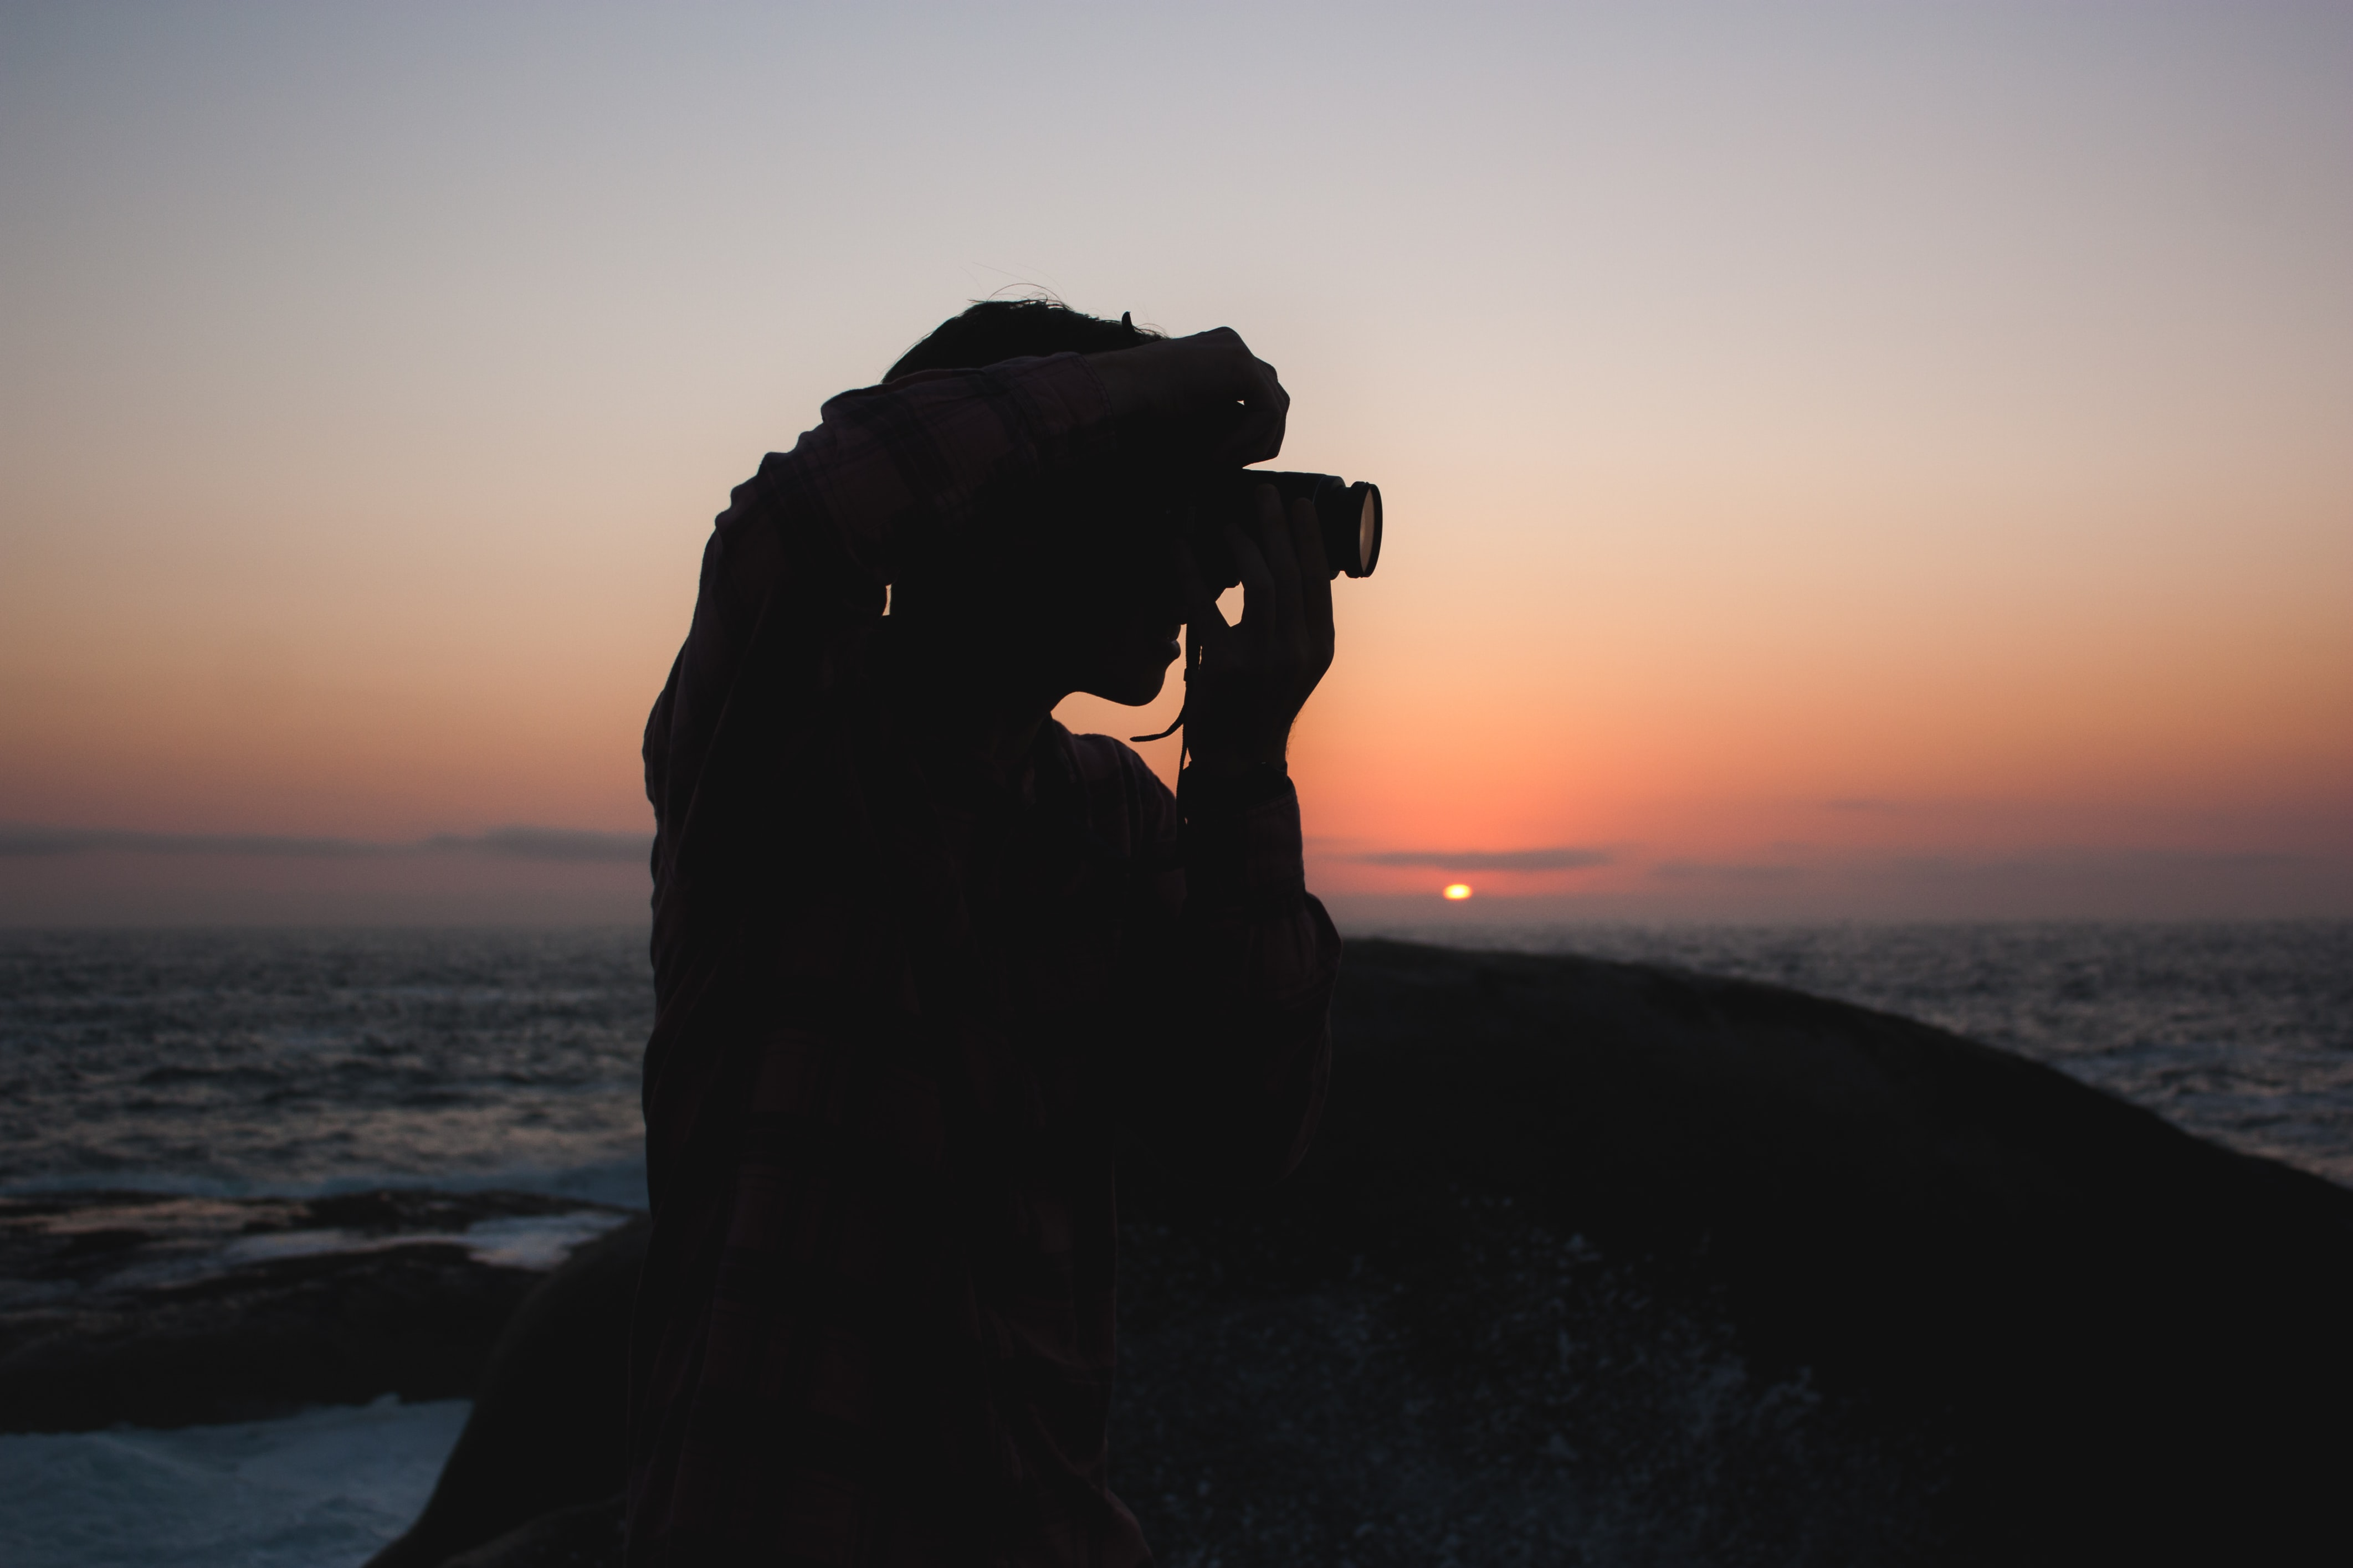 silhouette of person taking photograph